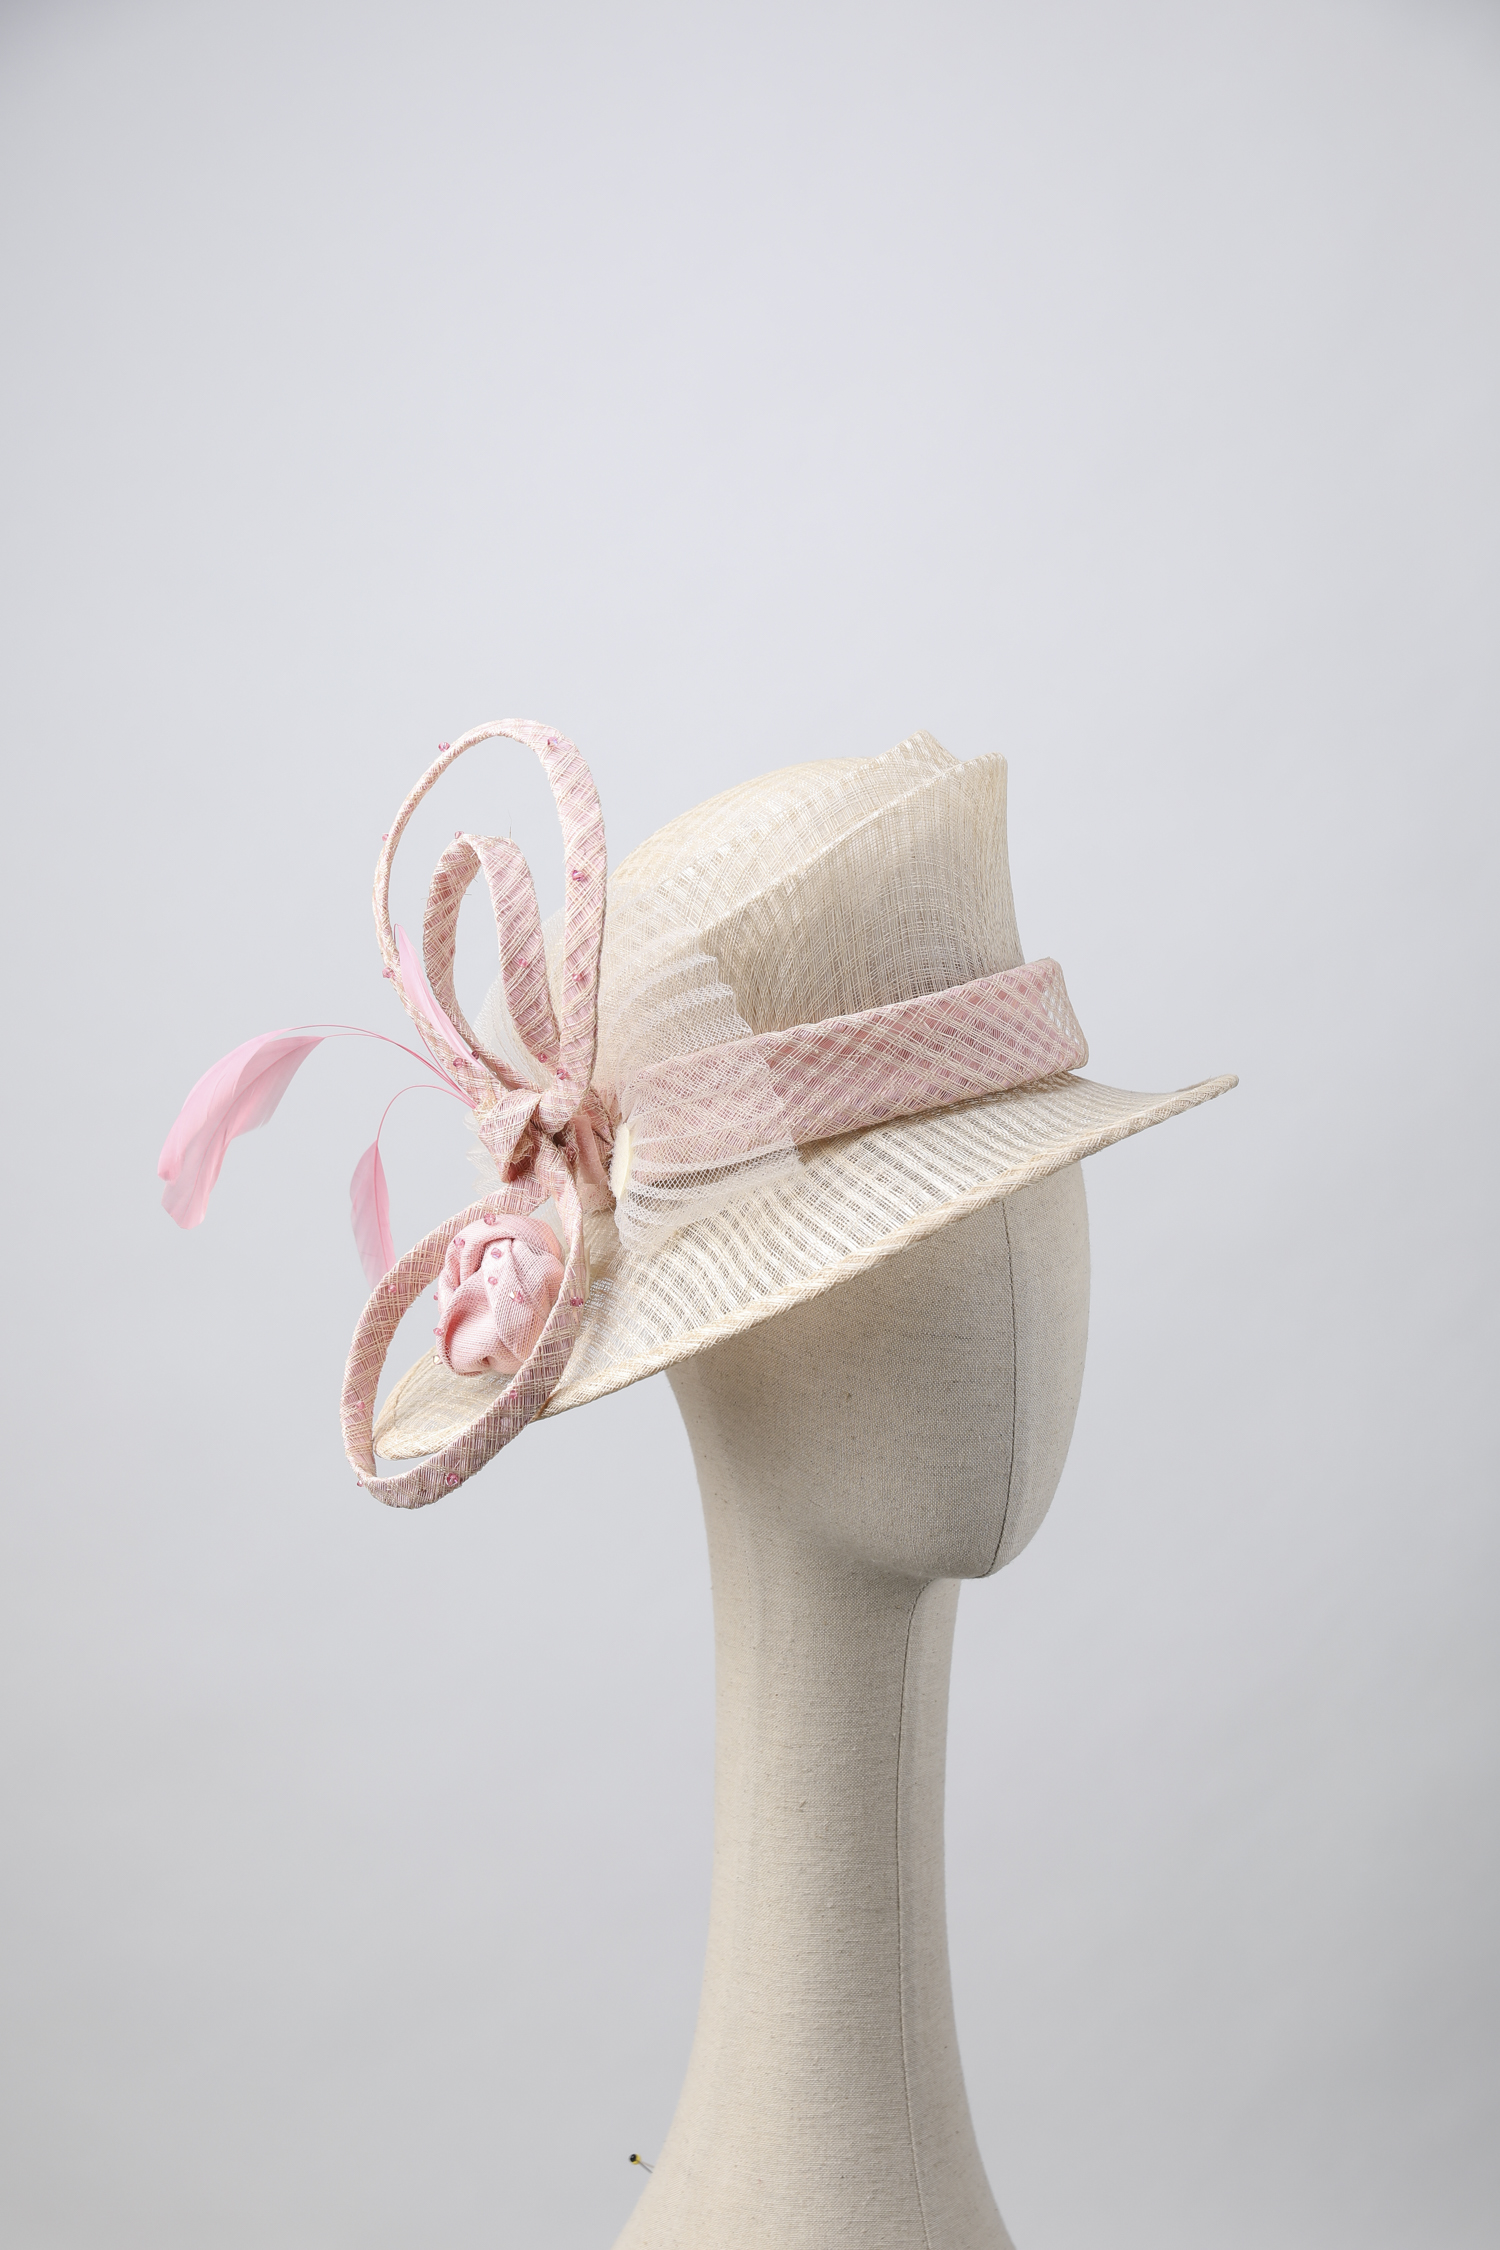 Copy of Jaycow Millinery by Jay Cheng Sample Stock 2019 (17).jpg